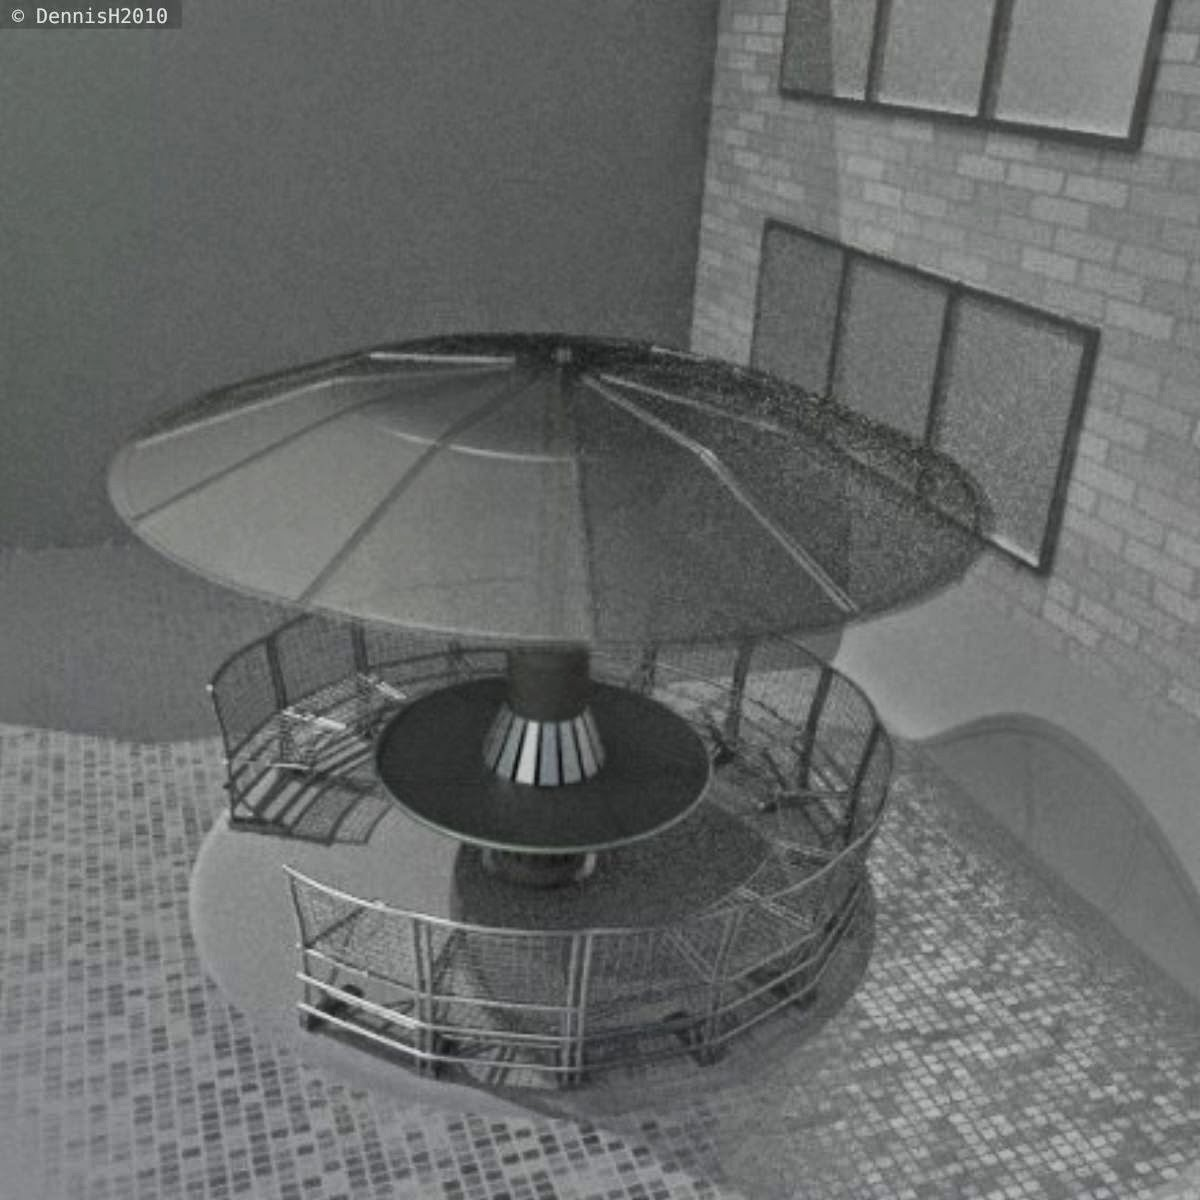 A round bench made of stainless steel with a rigged rain/sun protection by DennisH2010